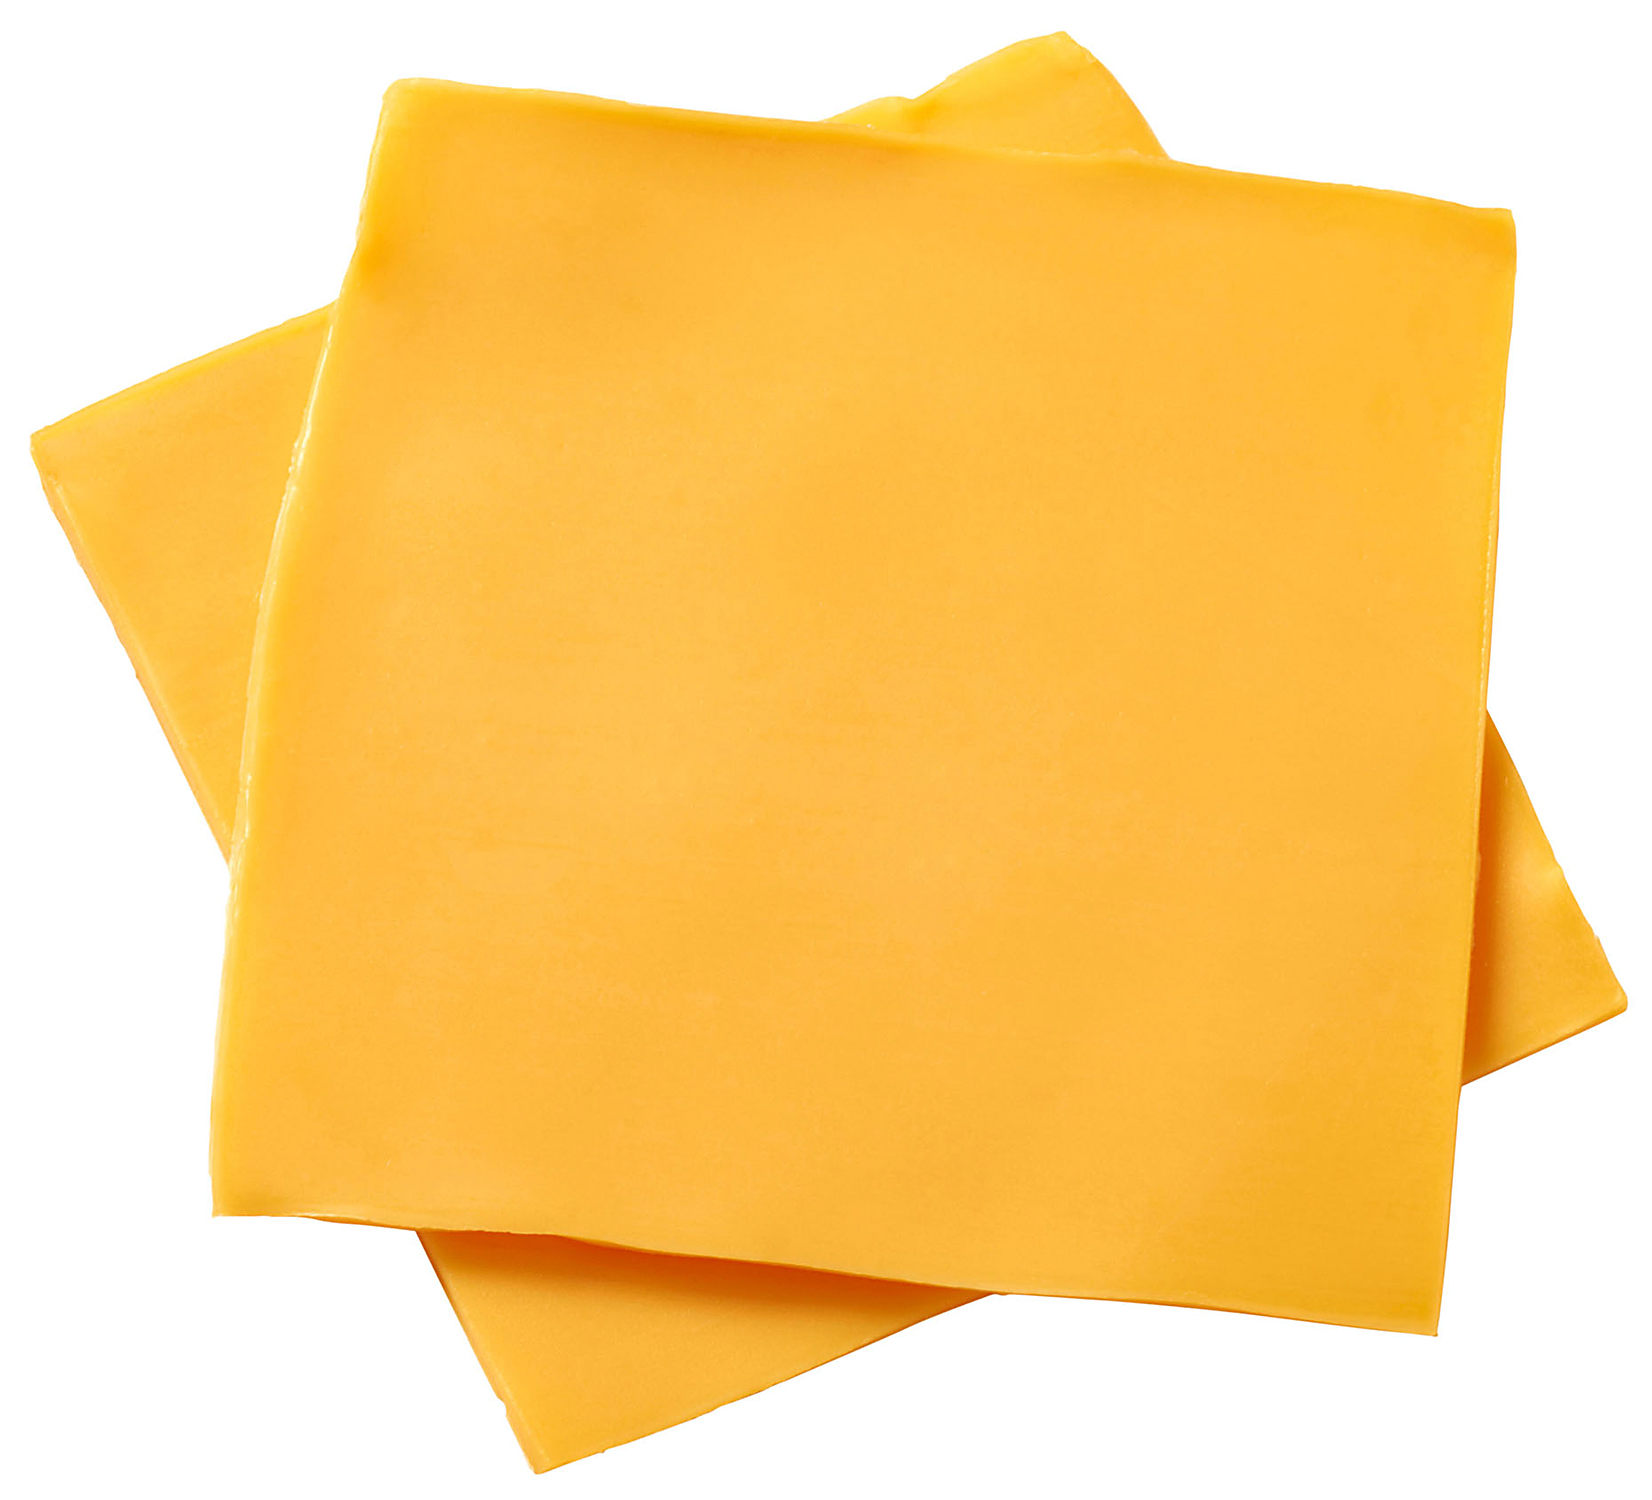 stacked slices of American cheese